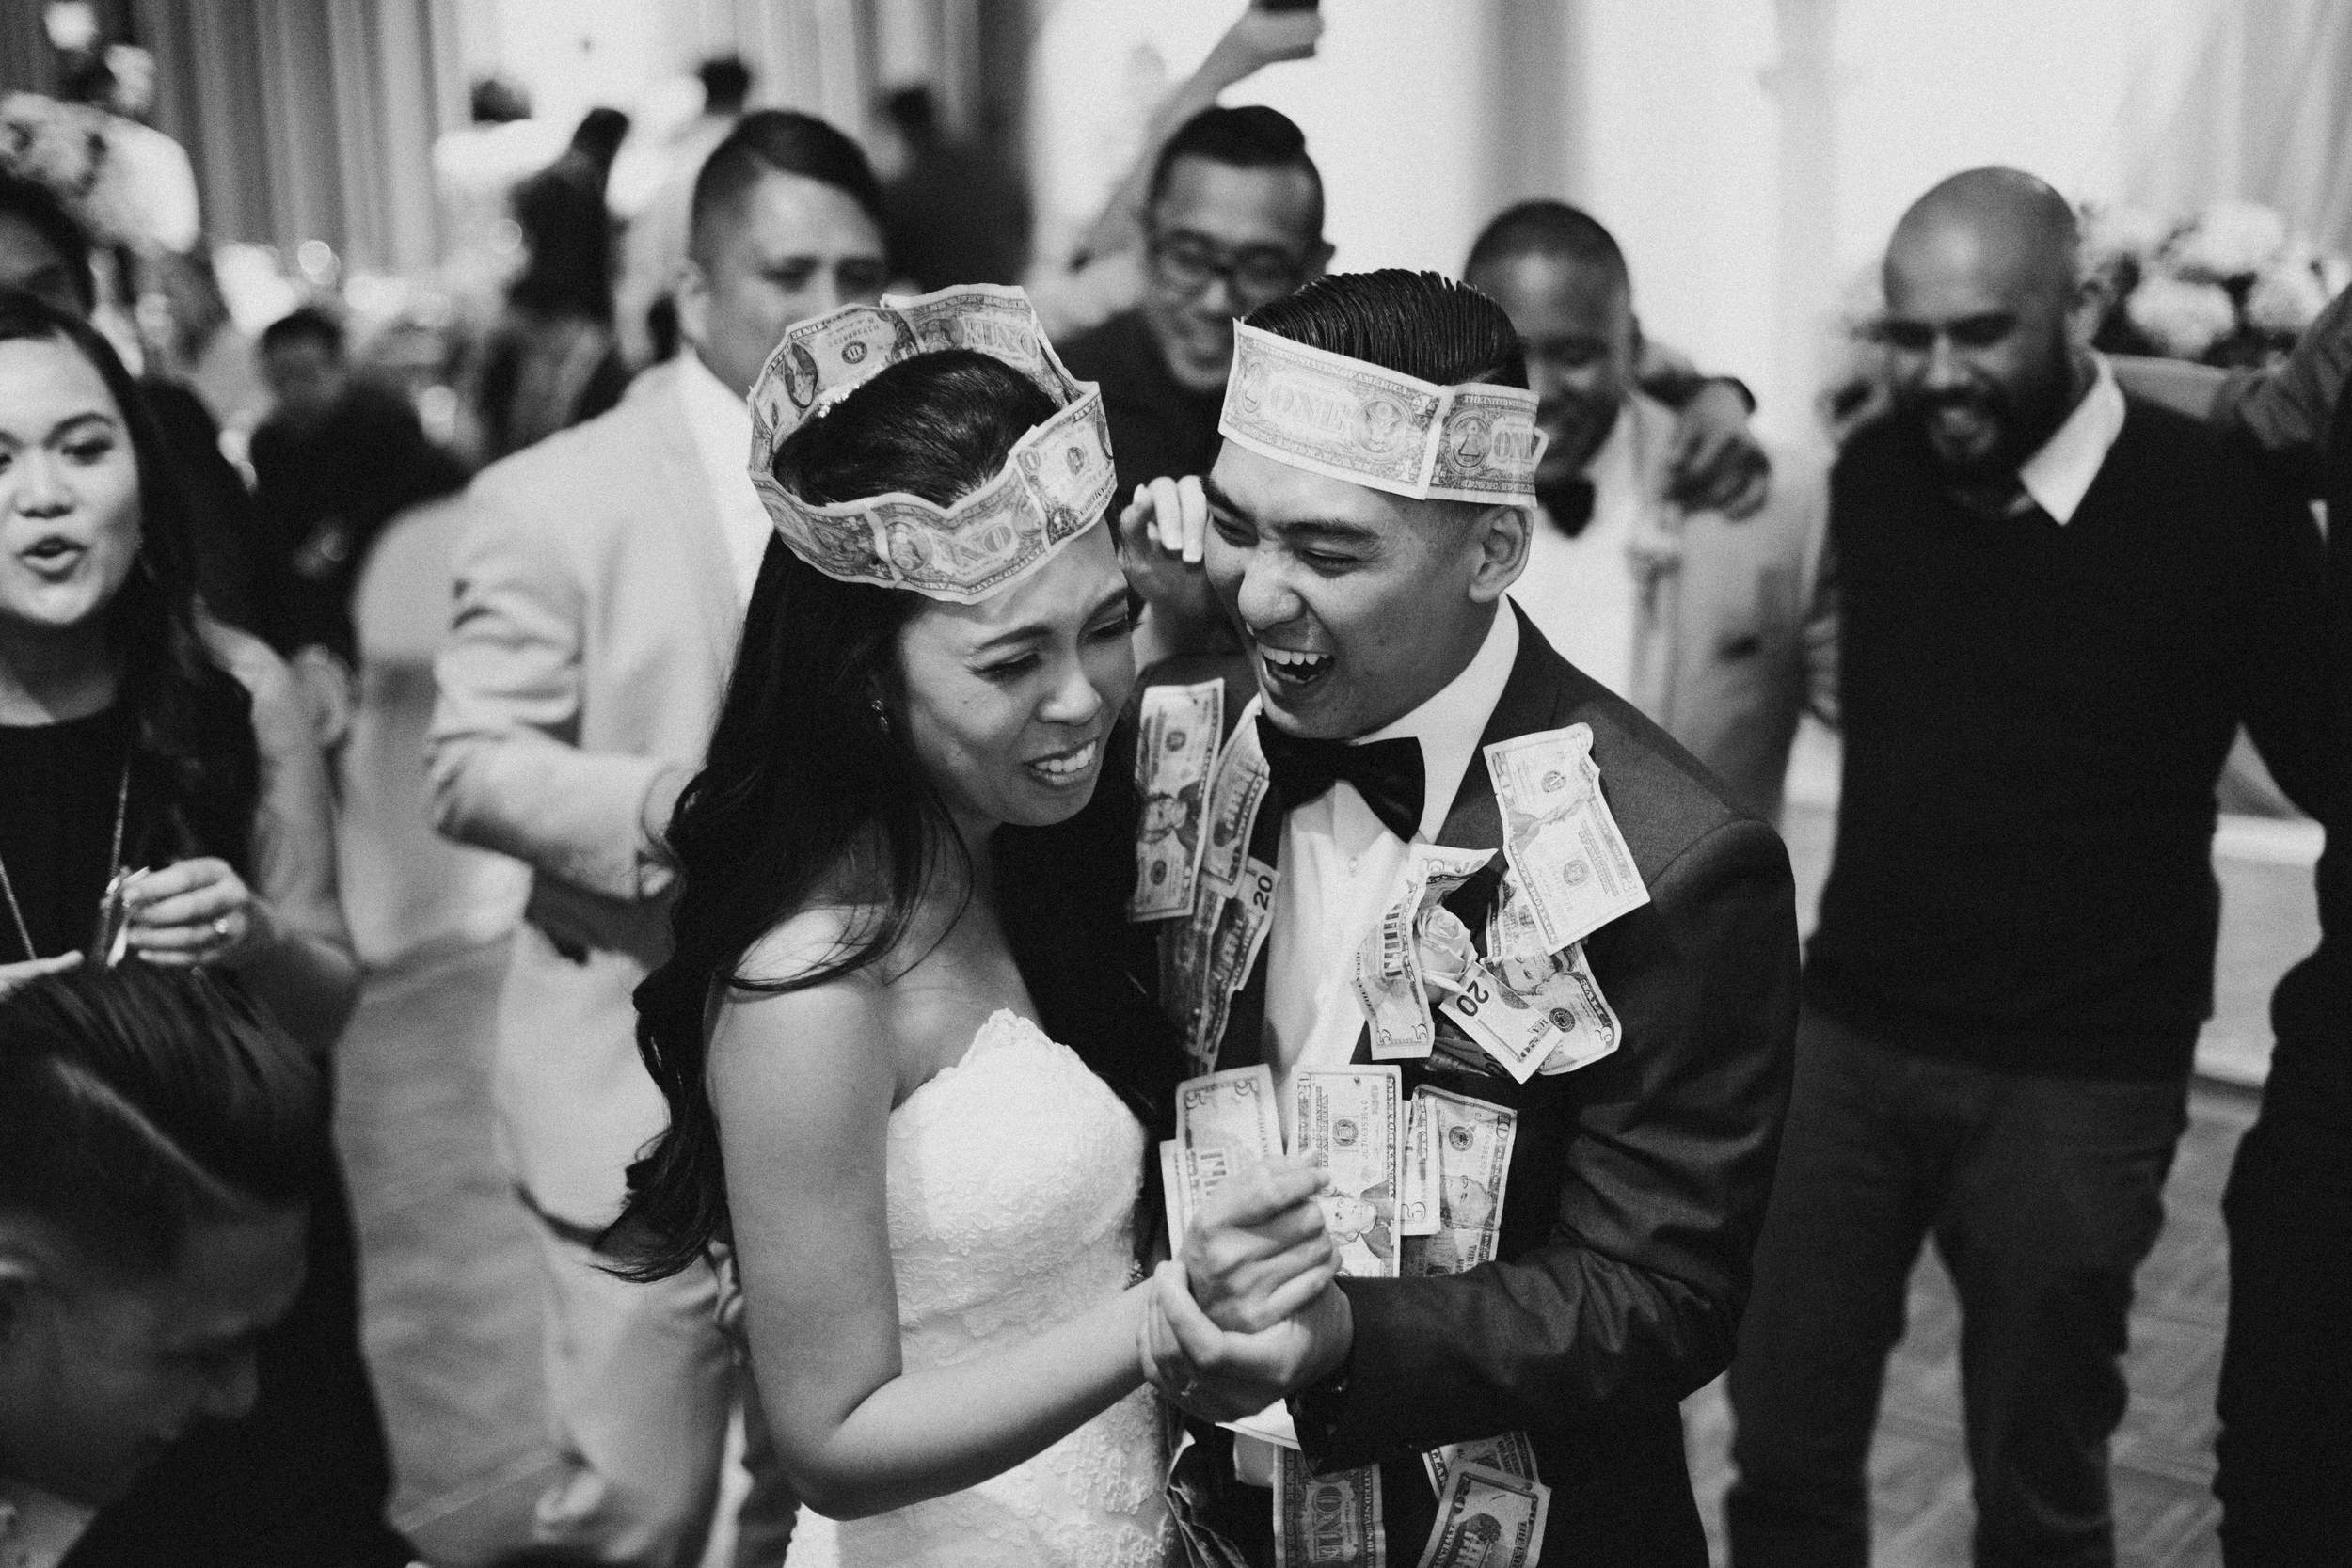 Madel + Andrew - Wedding, Natalie Griffo (153 of 169).jpg